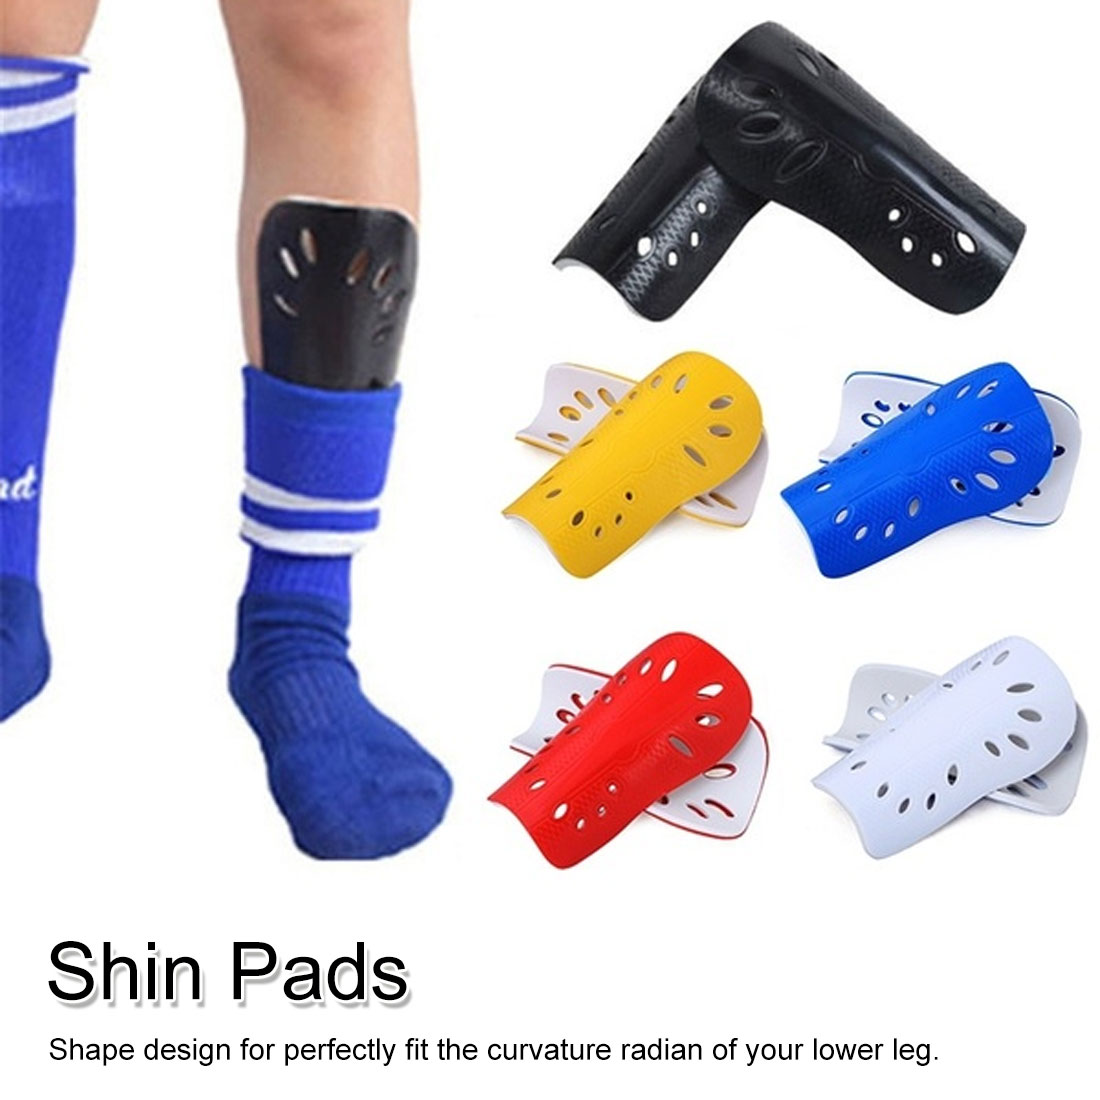 1 Pair Adult Knee Support Football Sports Football Game Soccer Shin Guards Pads Leg Sleeves Soccer Shin Pads